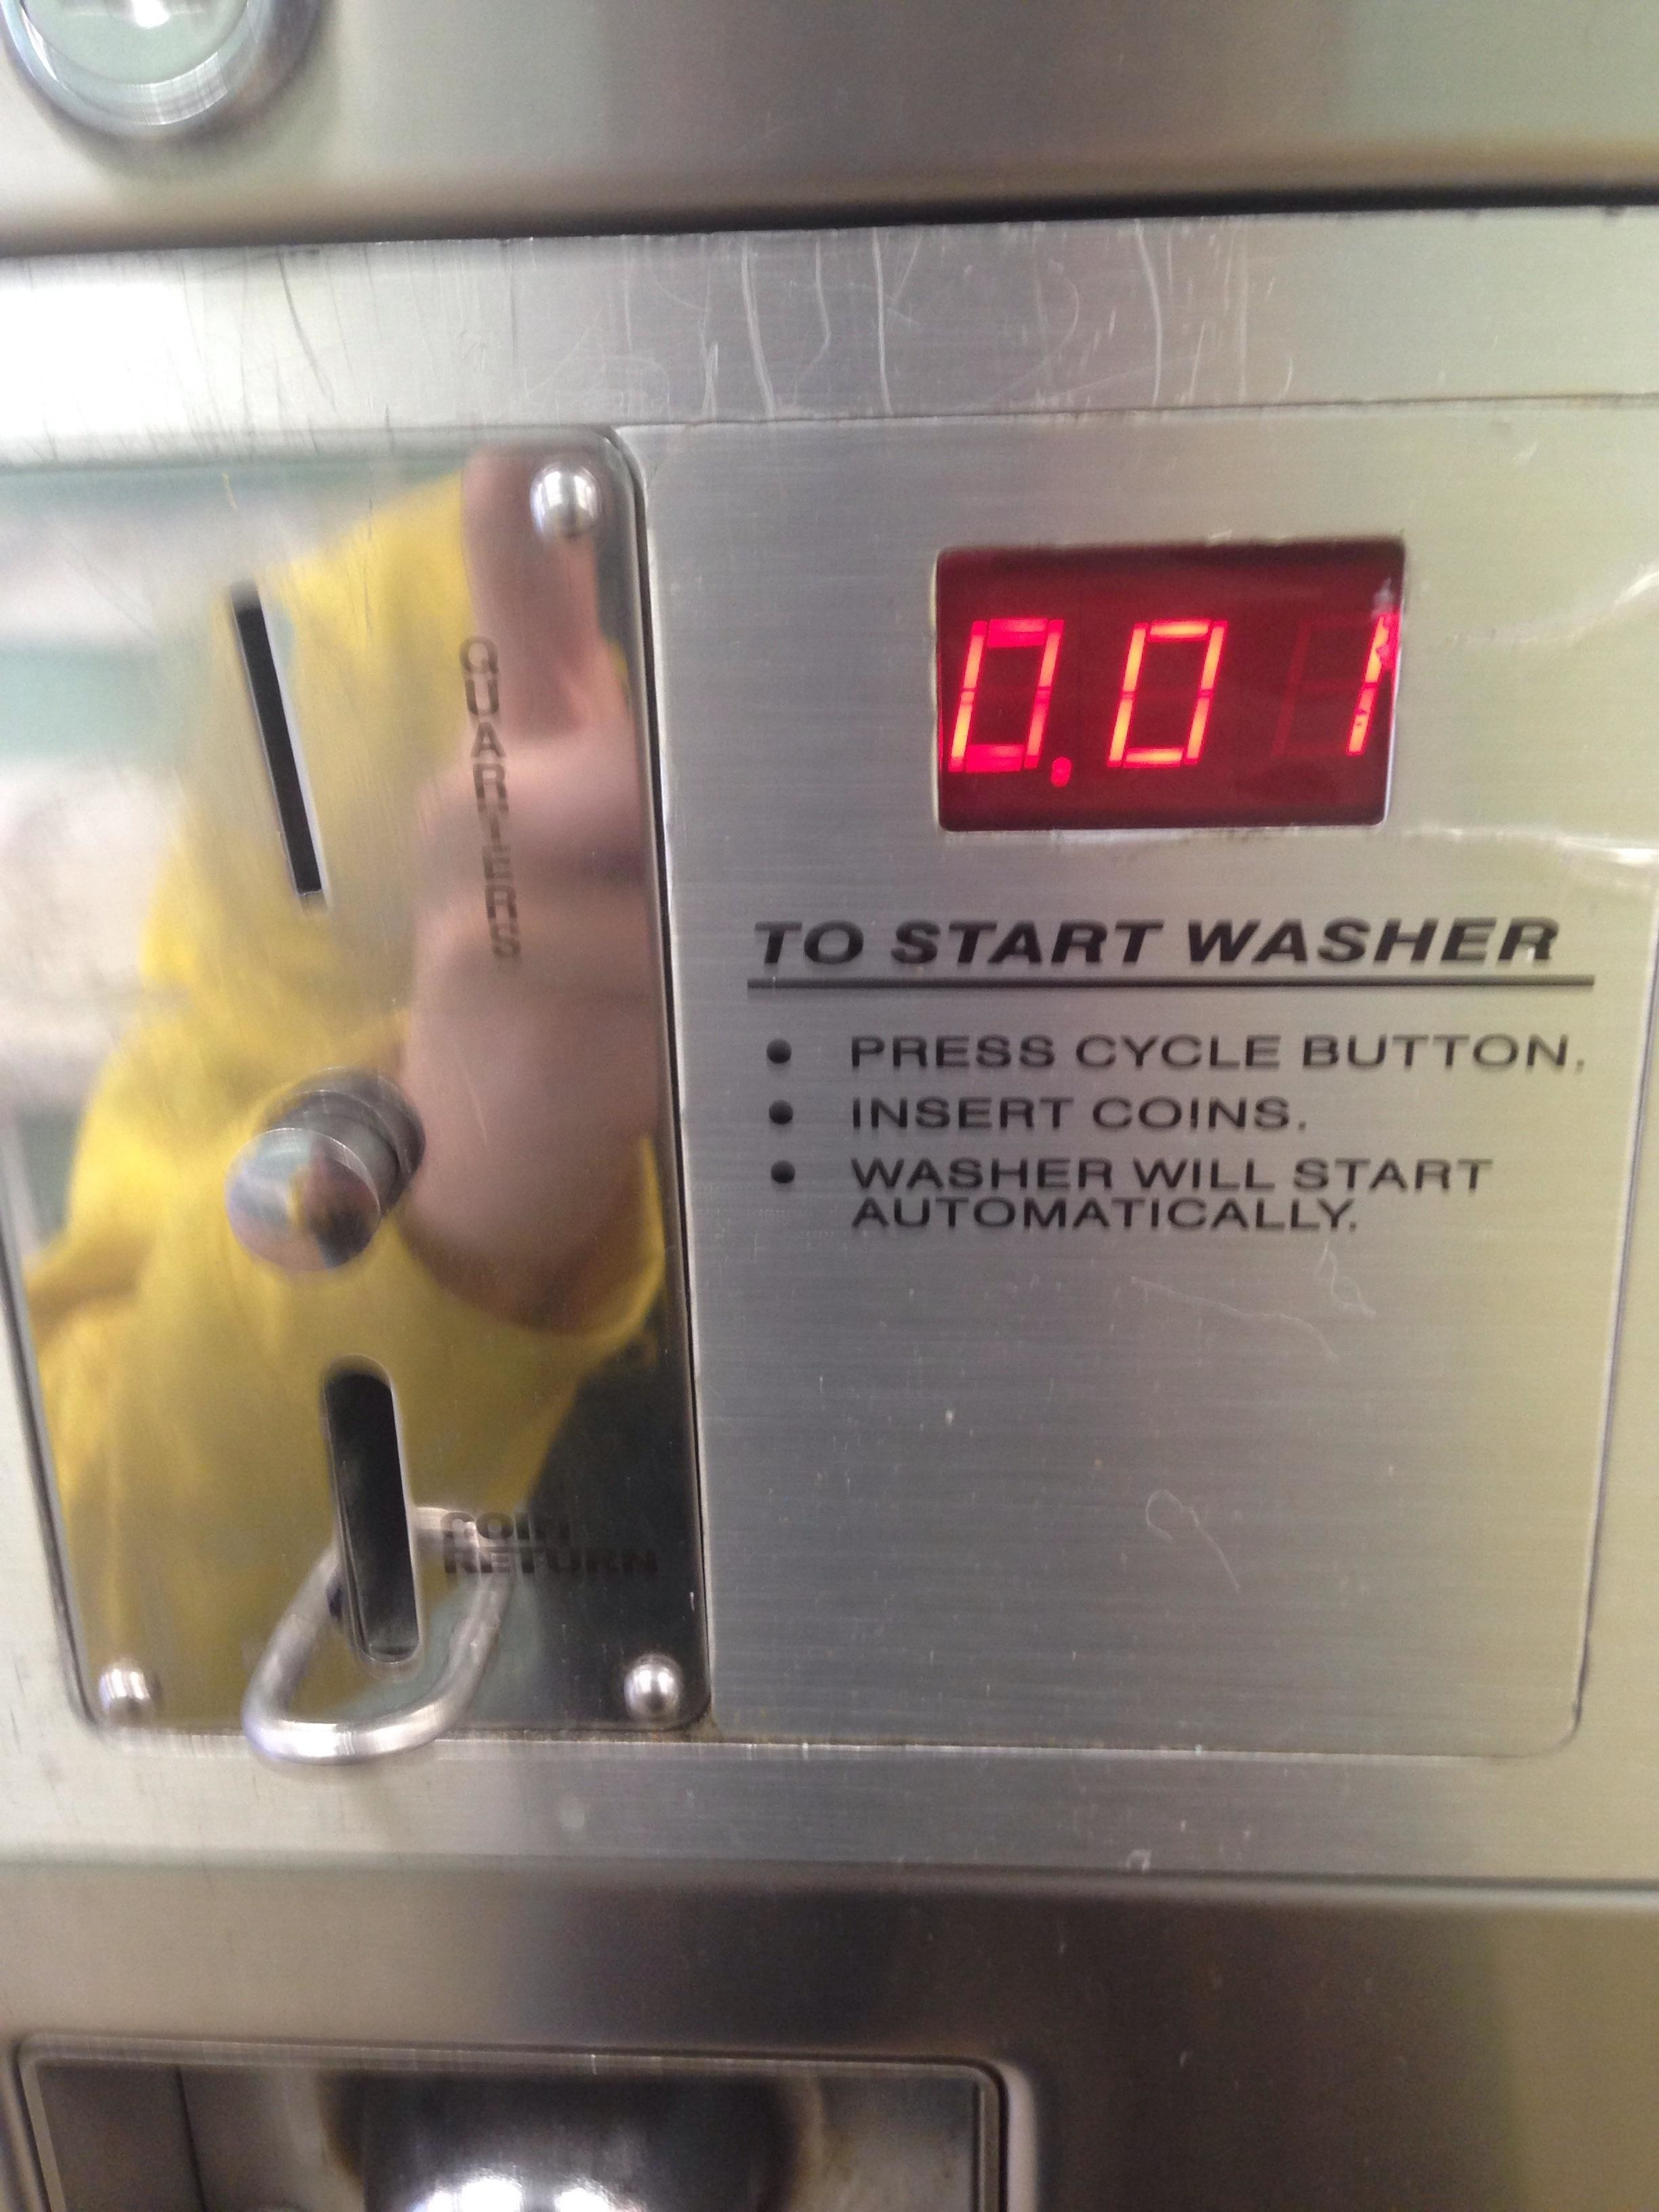 The coin slot on a washing machine that takes quarters with a digital display that reads 0.01